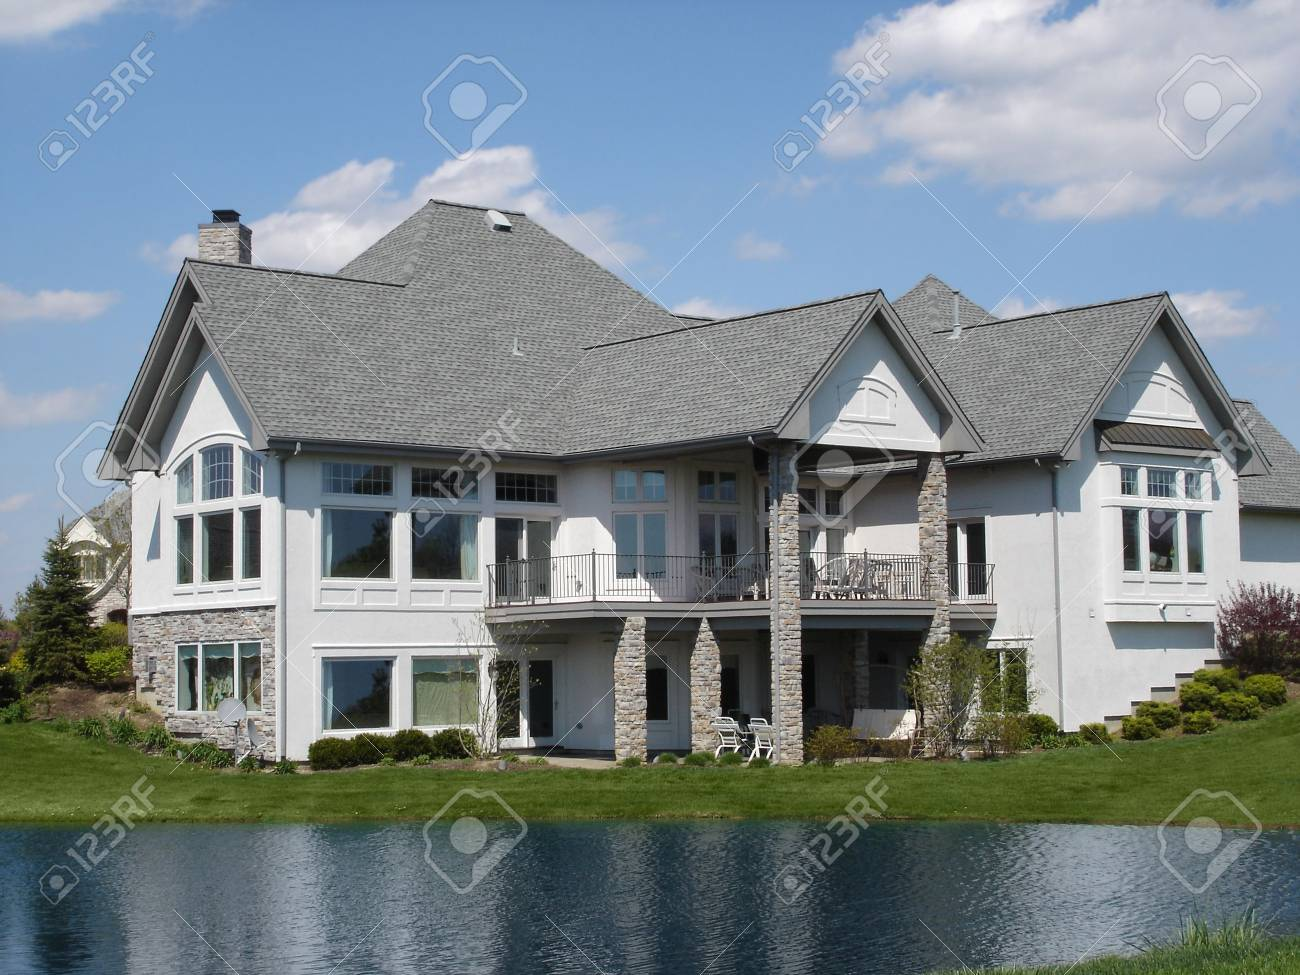 Large Home on Water Stock Photo - 3670280